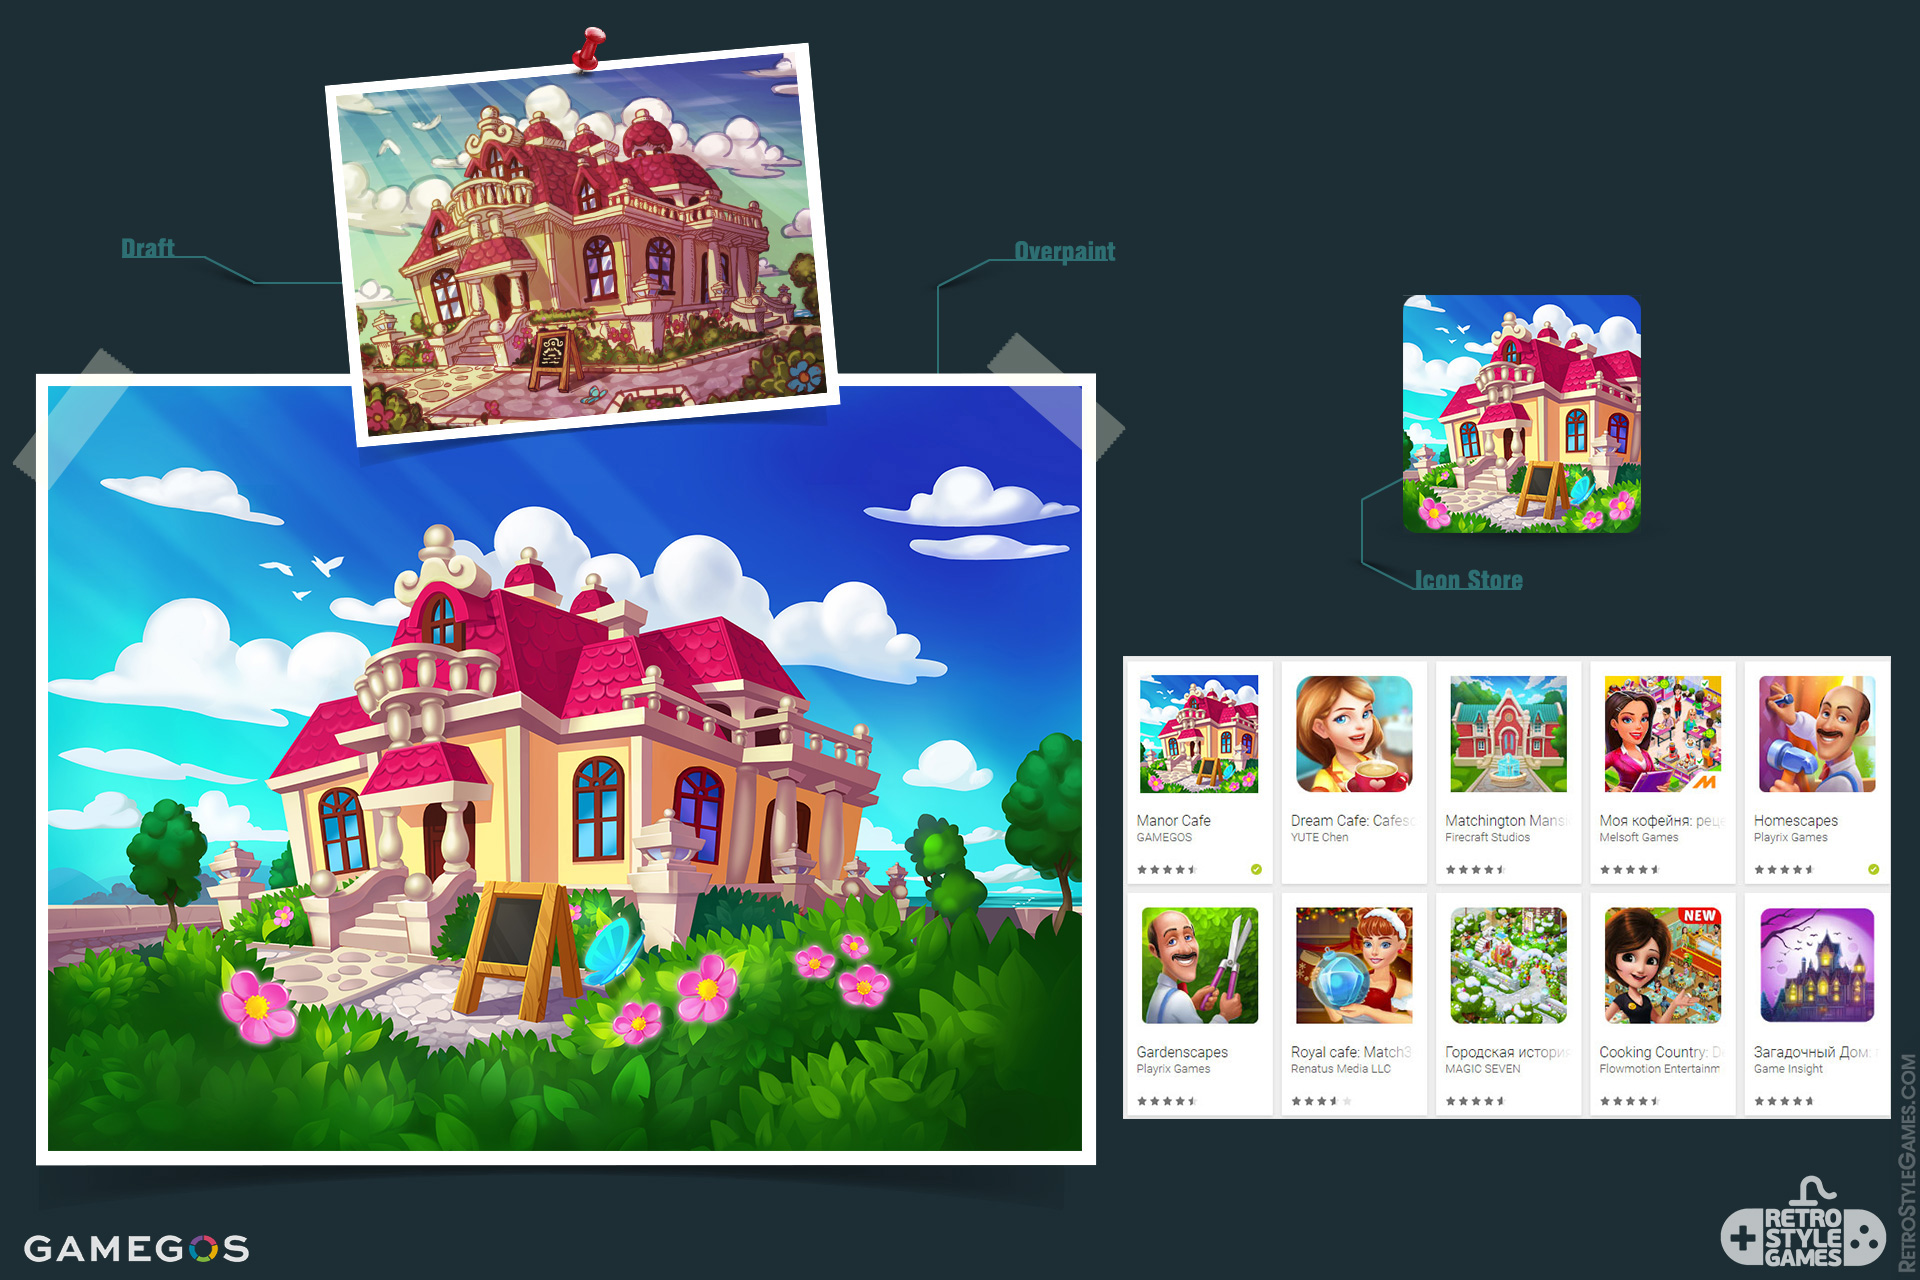 2D Illustration Game Icons Mansion Manor Cafe Overpaint